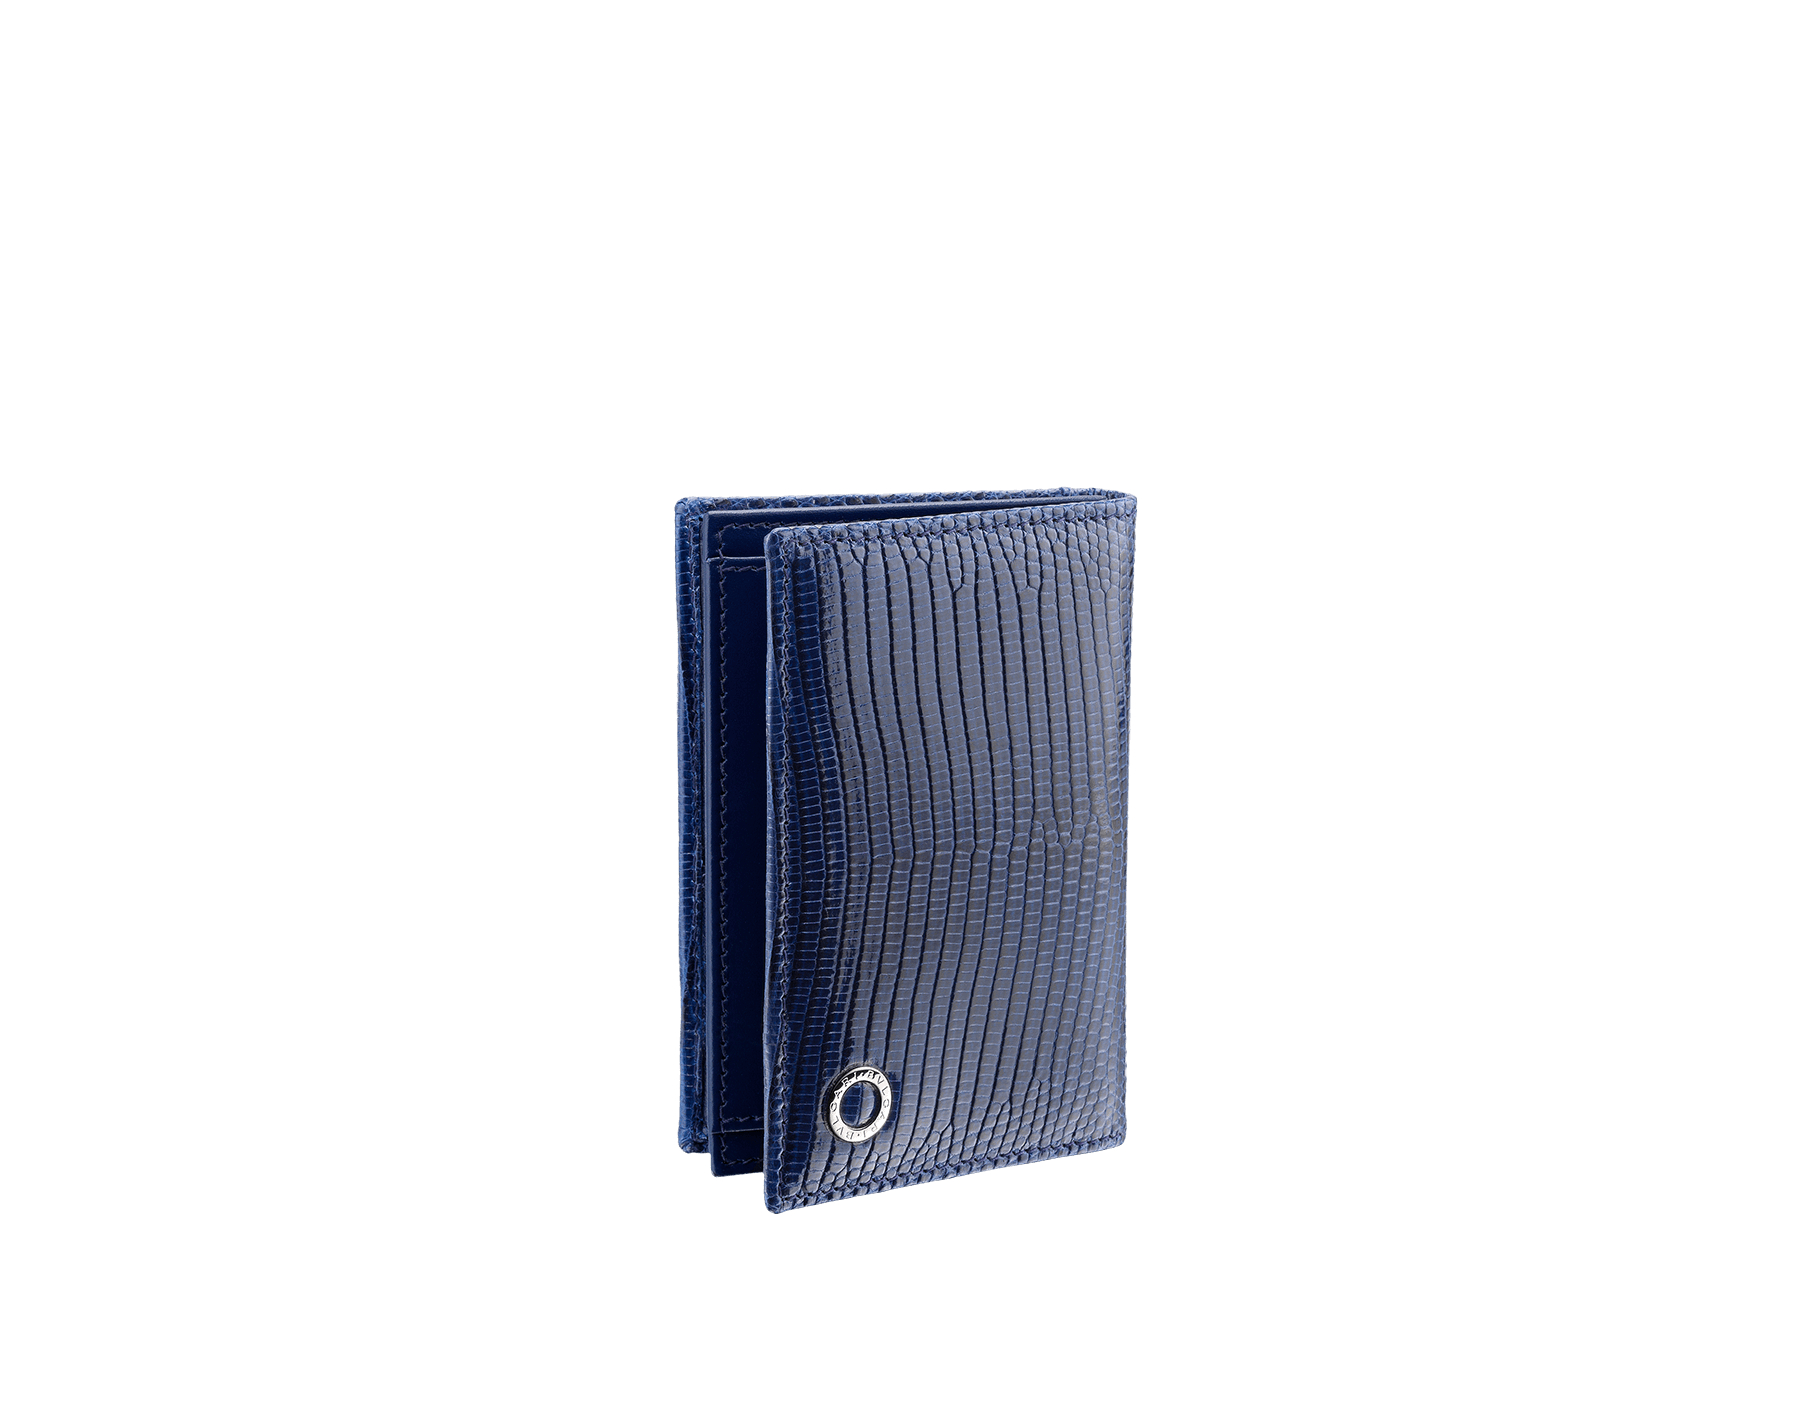 Business card holder in denim sapphire shiny lizard skin and calf leather with brass palladium plated BVLGARI BVLGARI motif. Three credit card slots, one open pocket and Business cards compartment. BBM-BC-HOLD-SIMPLE-sl image 1